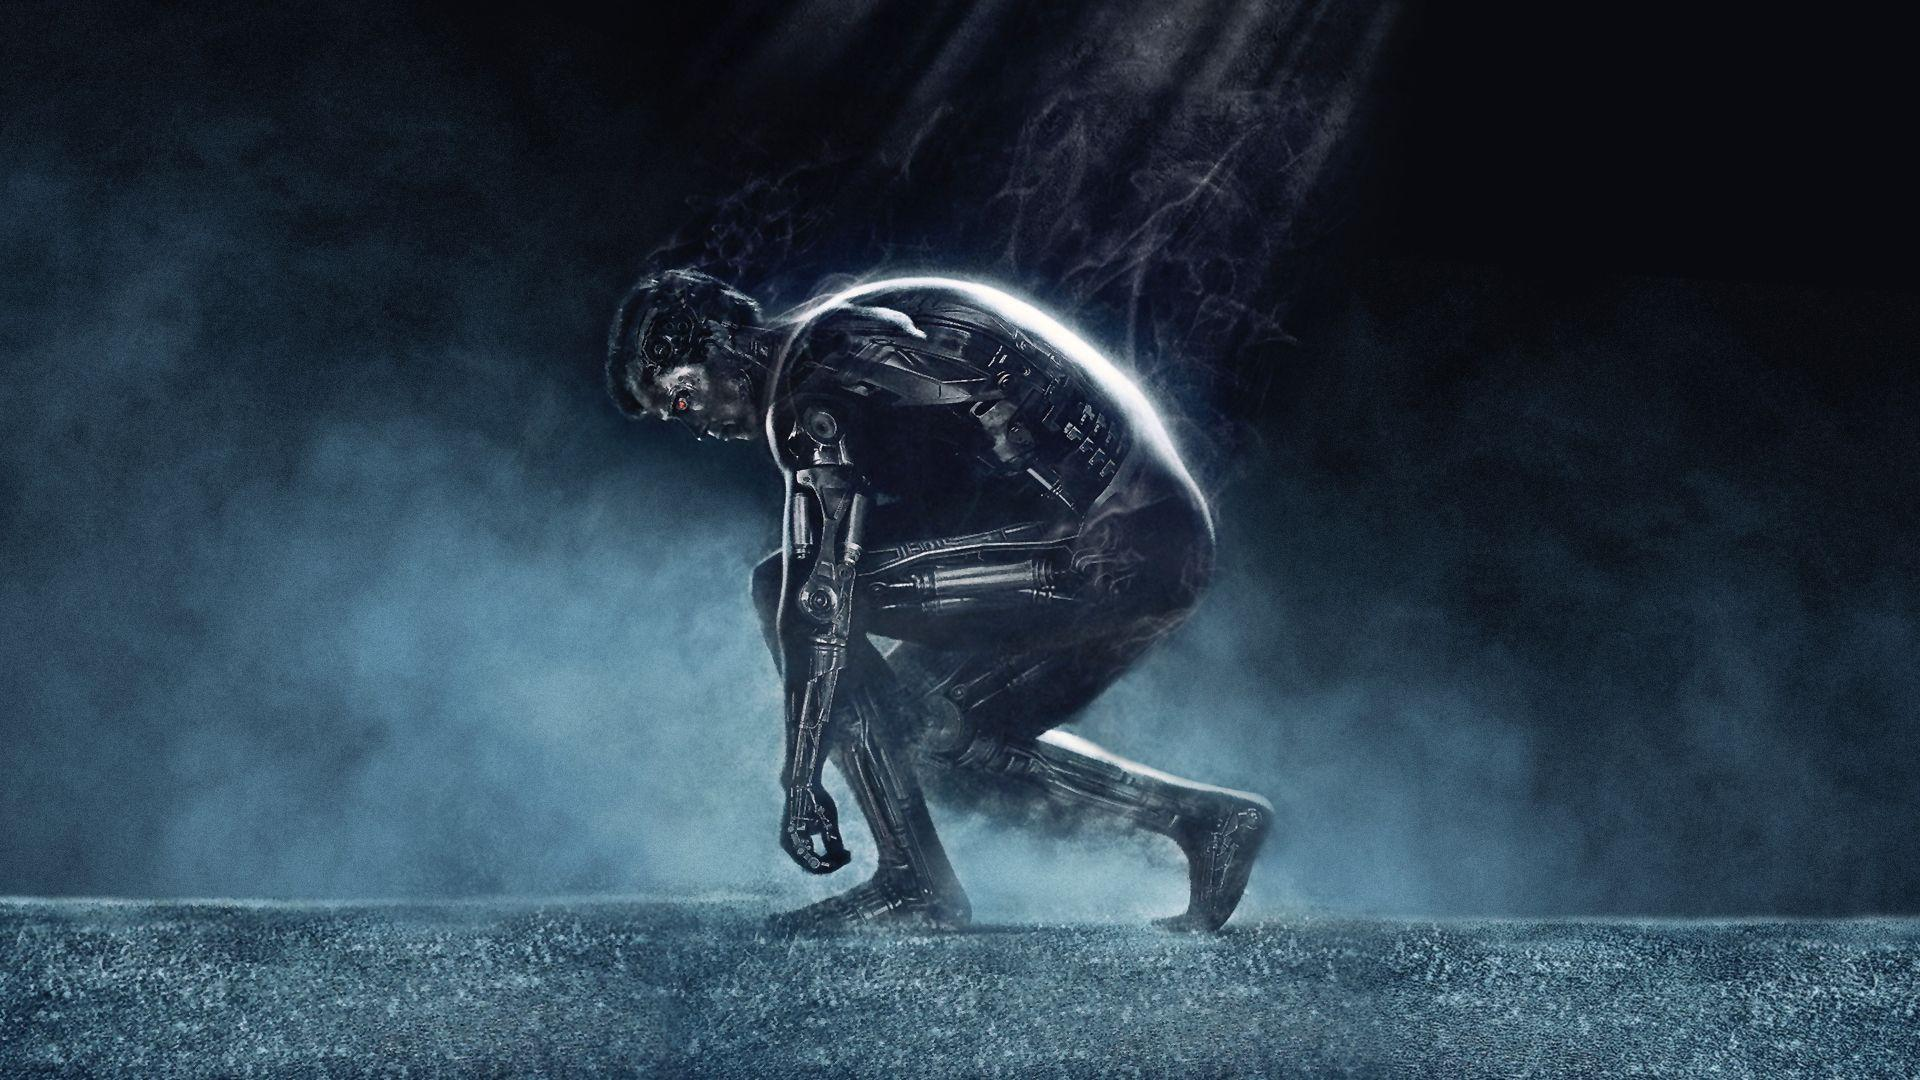 Terminator 6 Wallpapers Wallpaper Cave